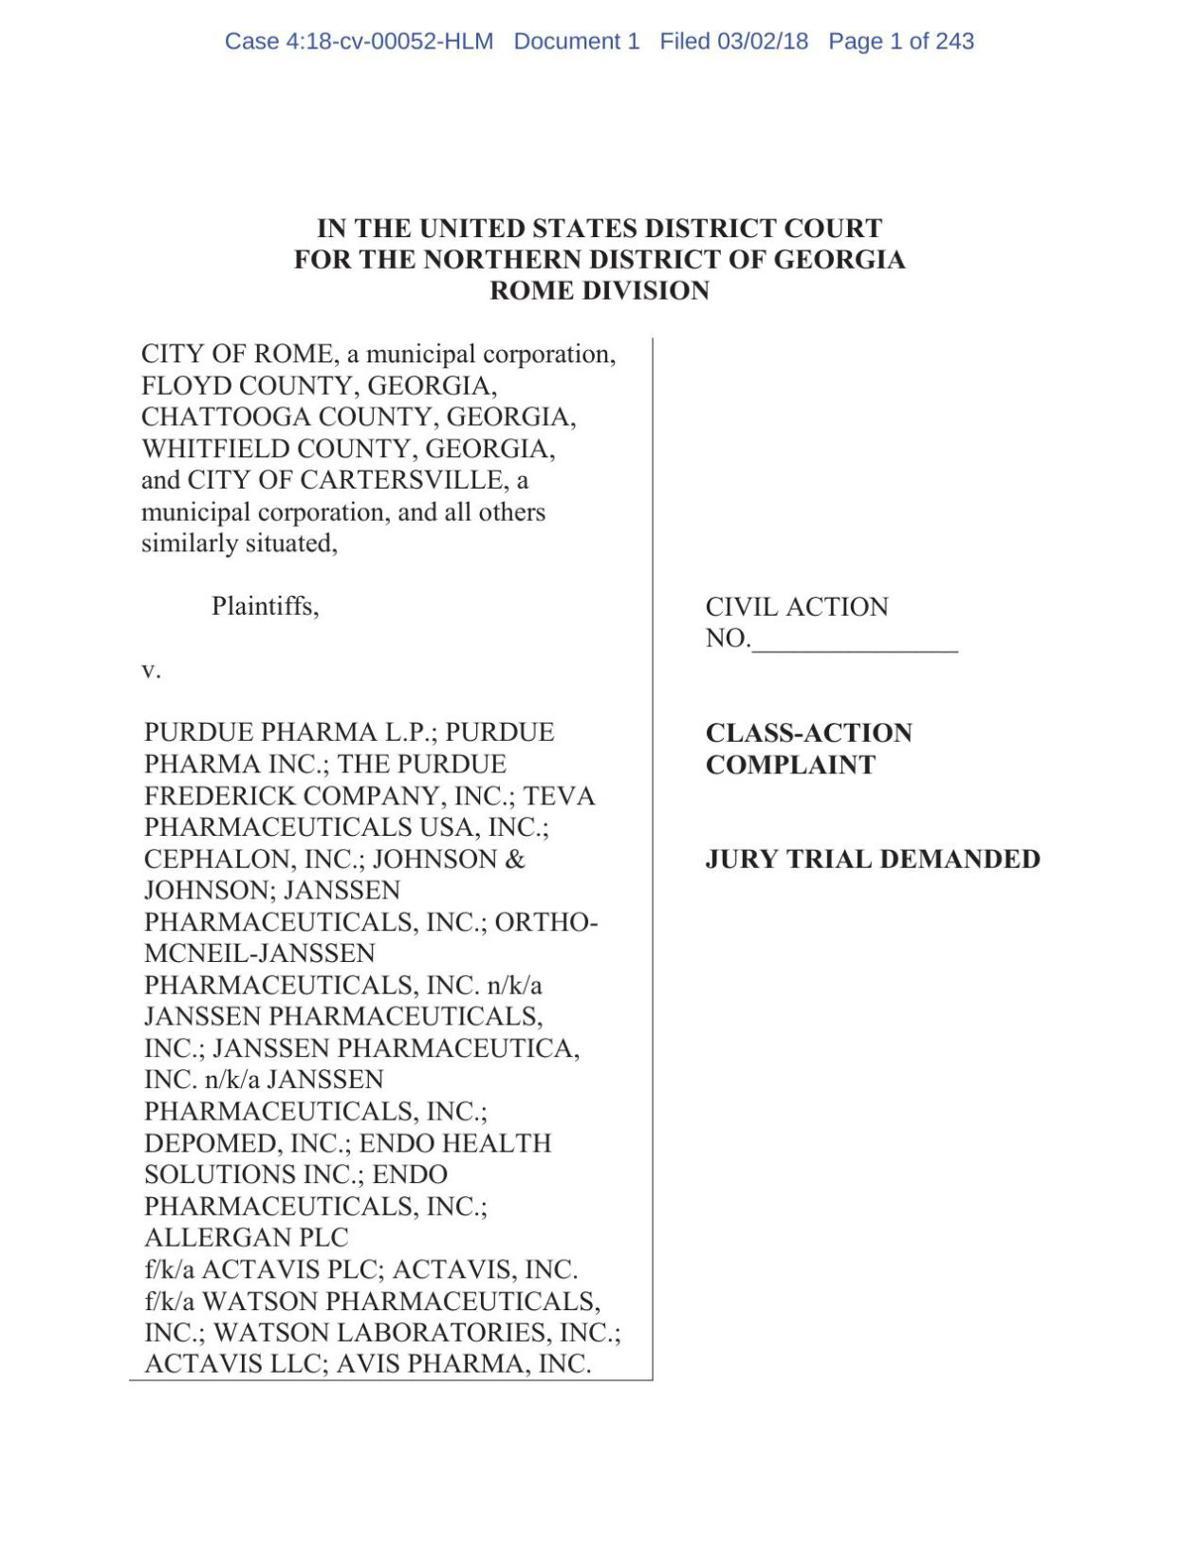 Opioid Lawsuit March 2, 2018